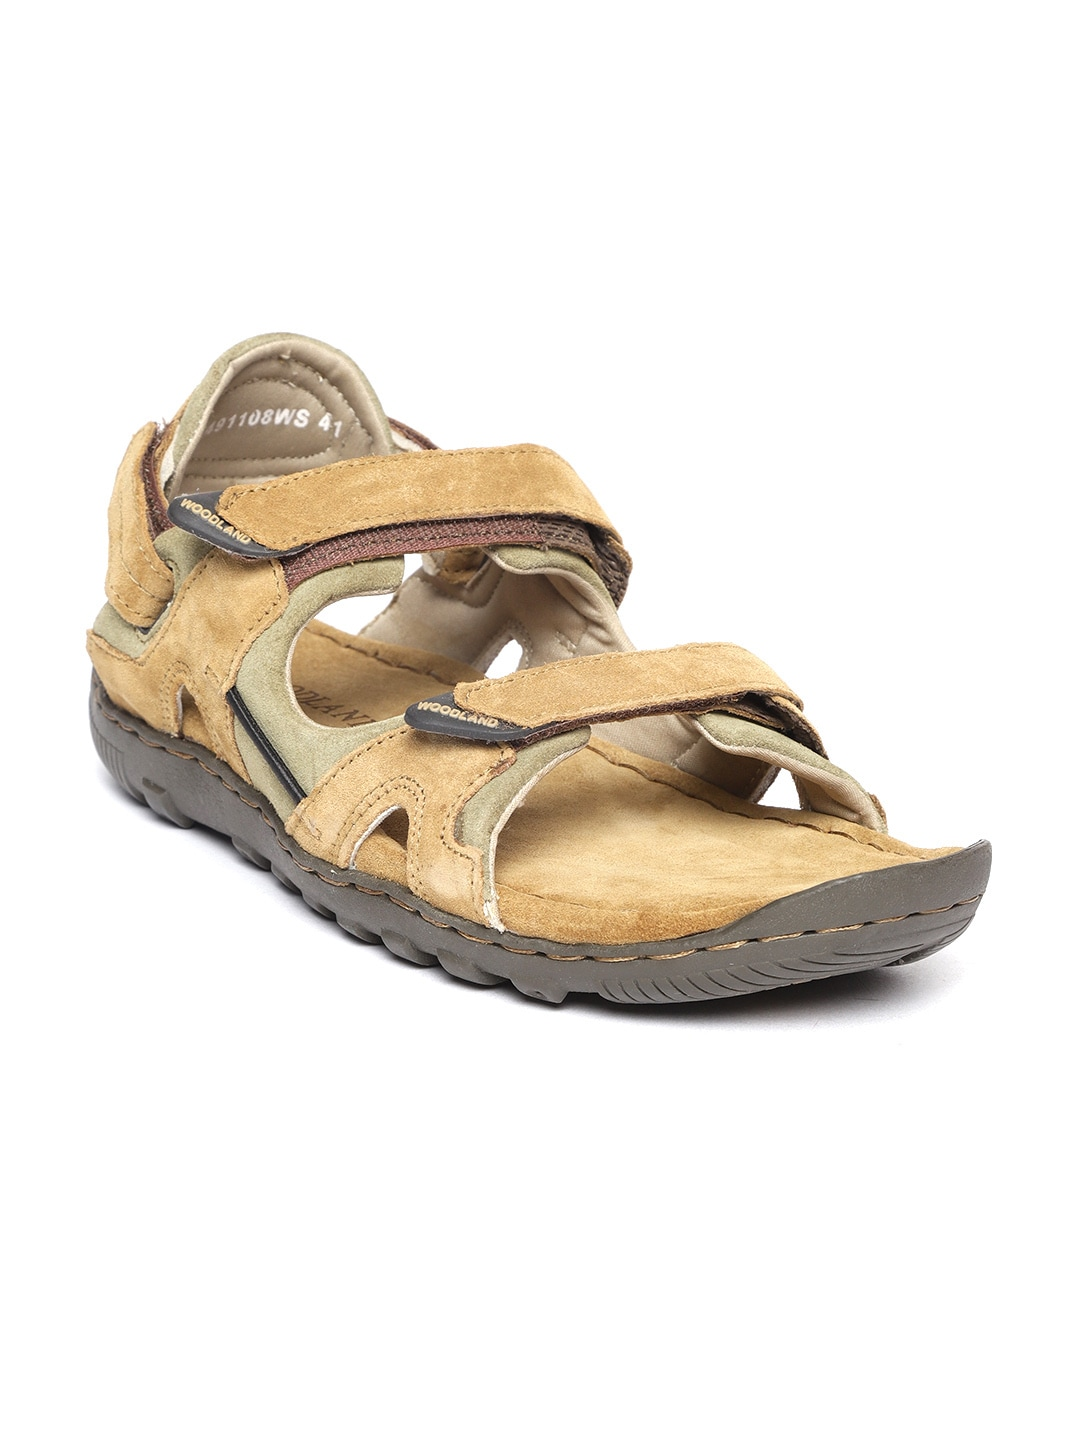 462e1131f58 Woods By Woodland Sandal - Buy Woods By Woodland Sandal online in India